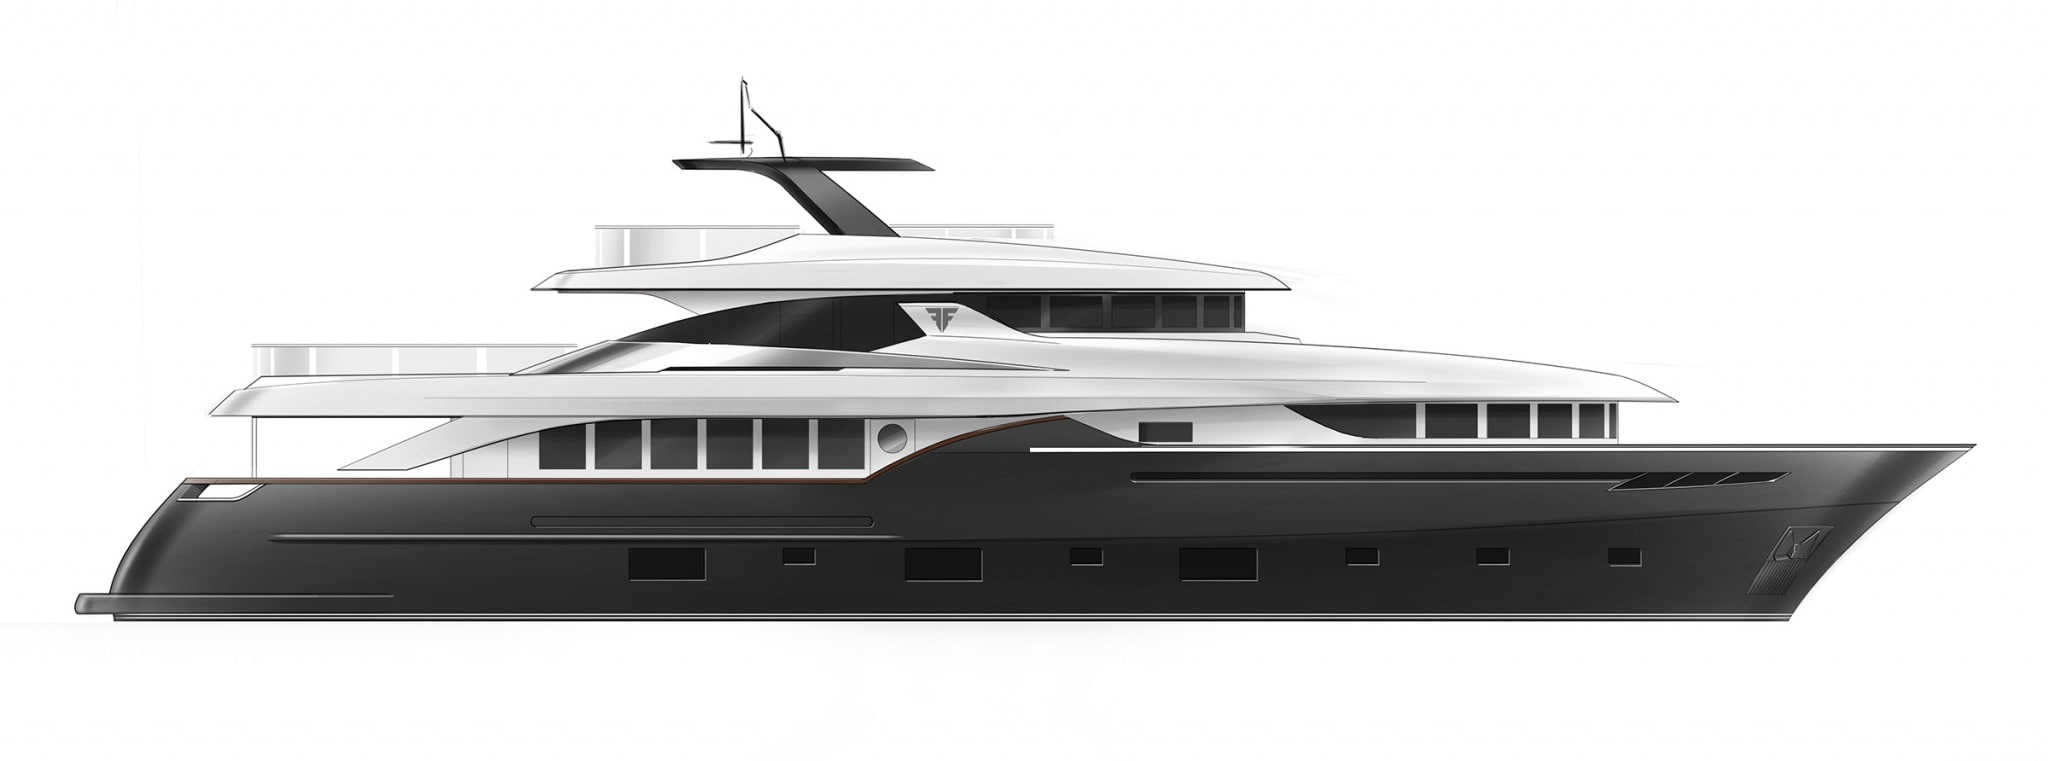 Profile N30 Displacement Yacht Low consumption